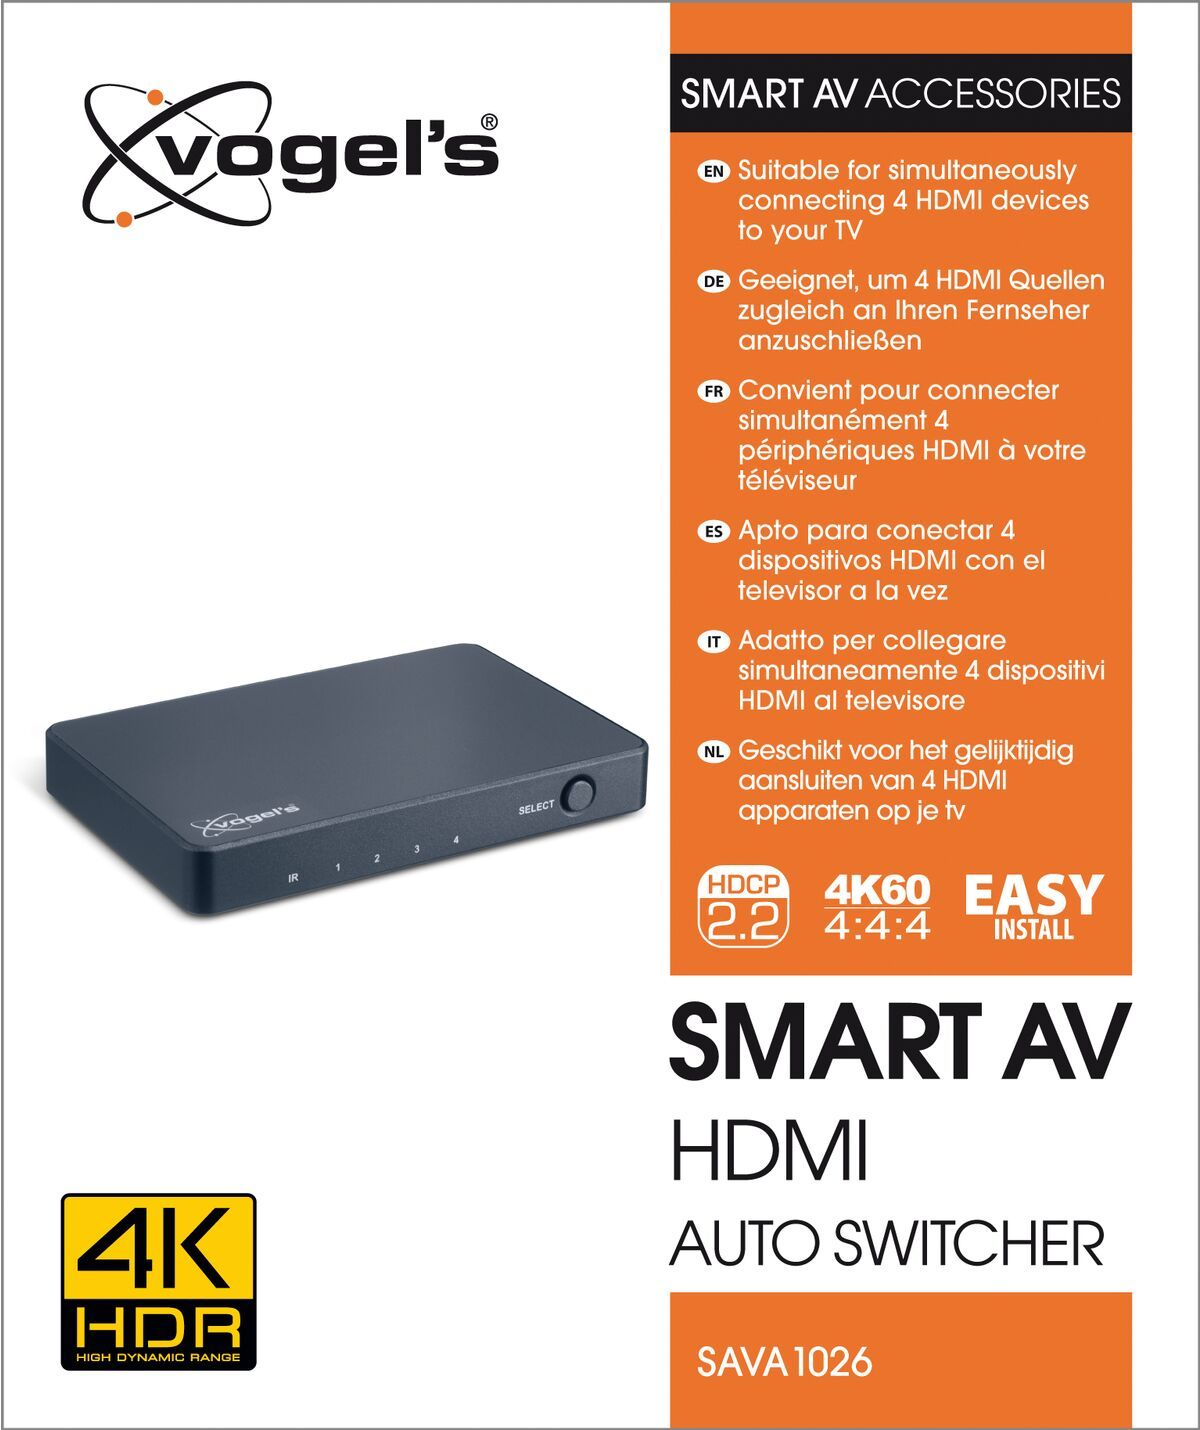 Vogel's Commutateur automatique AV Smart HDMI SAVA 1026 - Packaging front